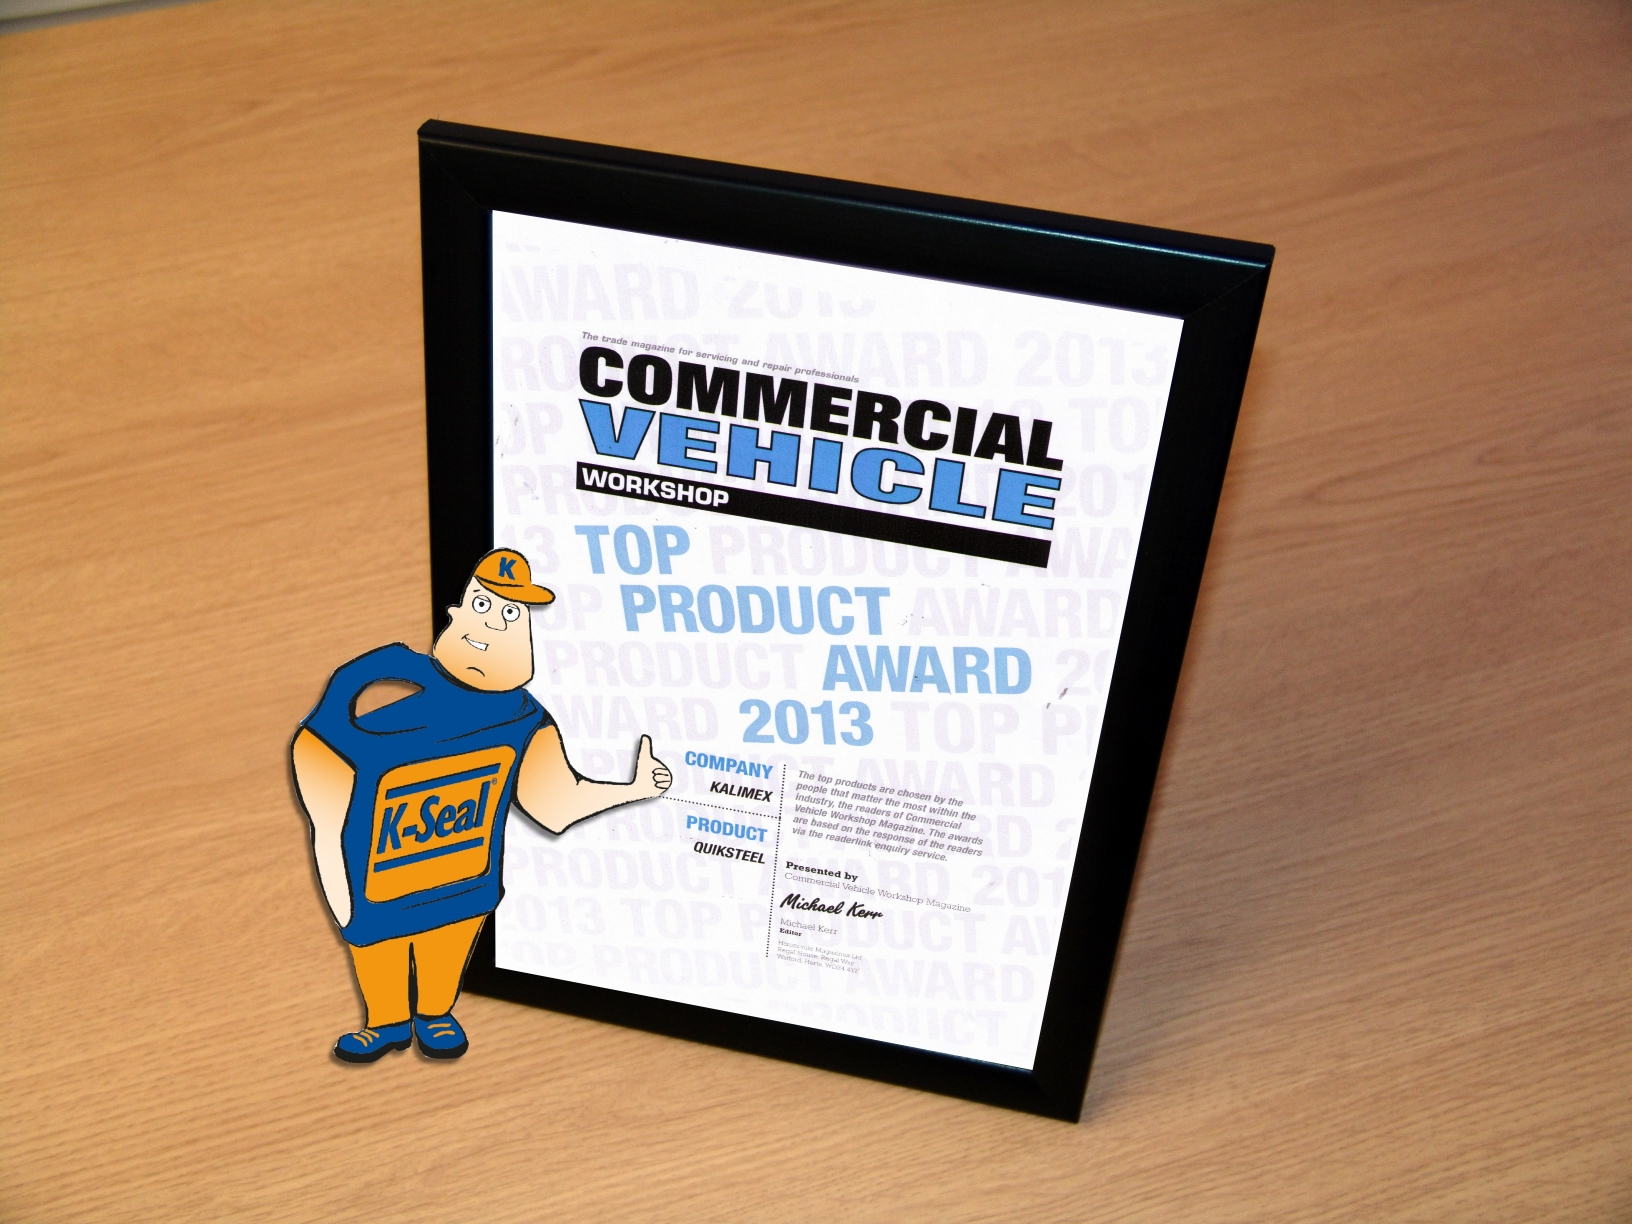 CVW Top Product 2013 (K-Seal)